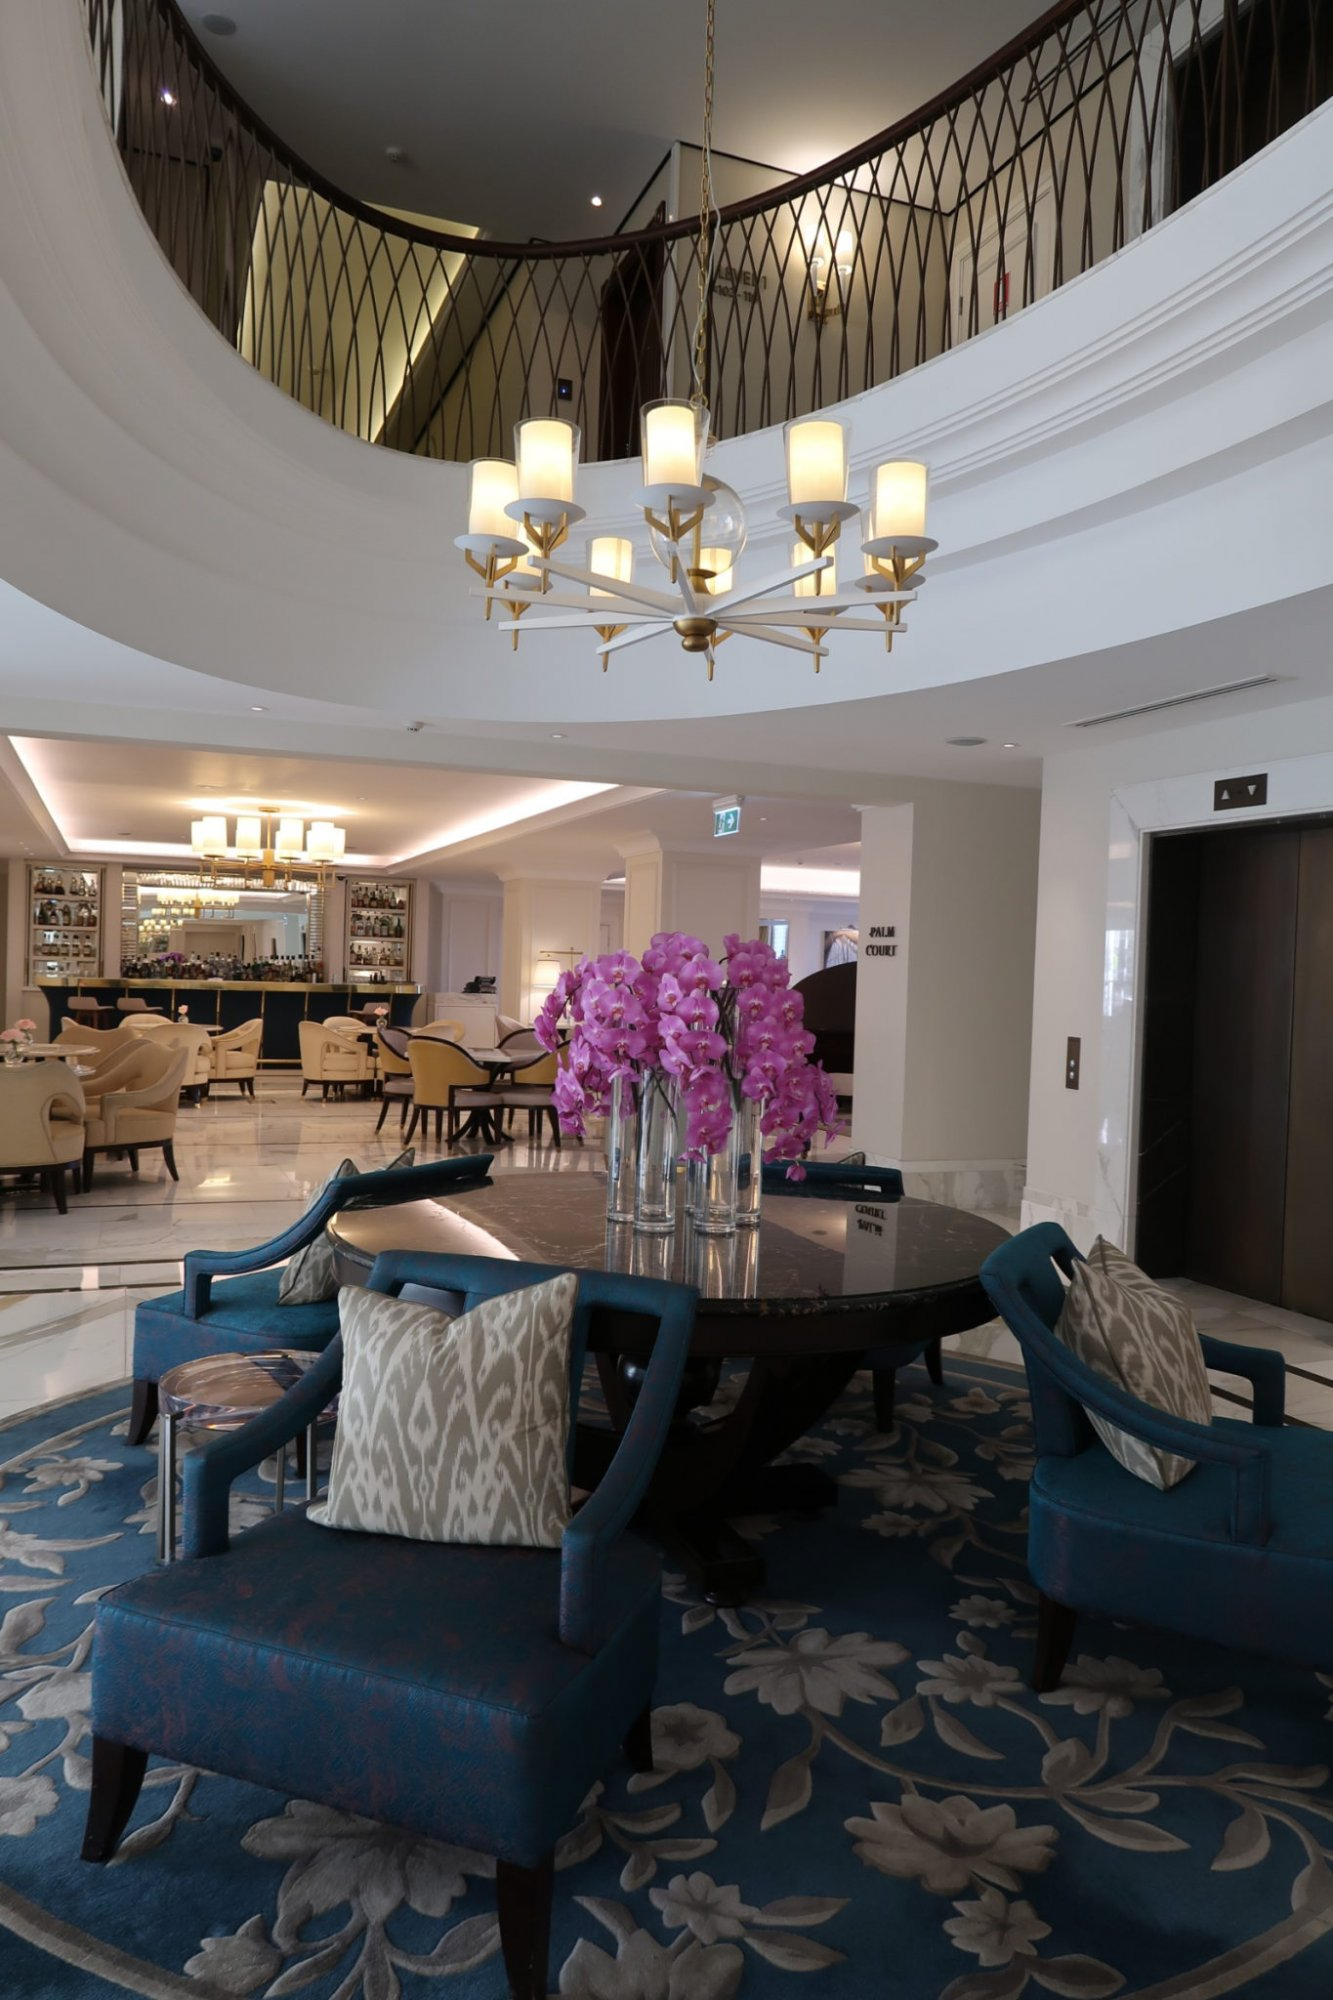 The Langham Sydney: Intimate luxury. — A TO ZA'ATAR